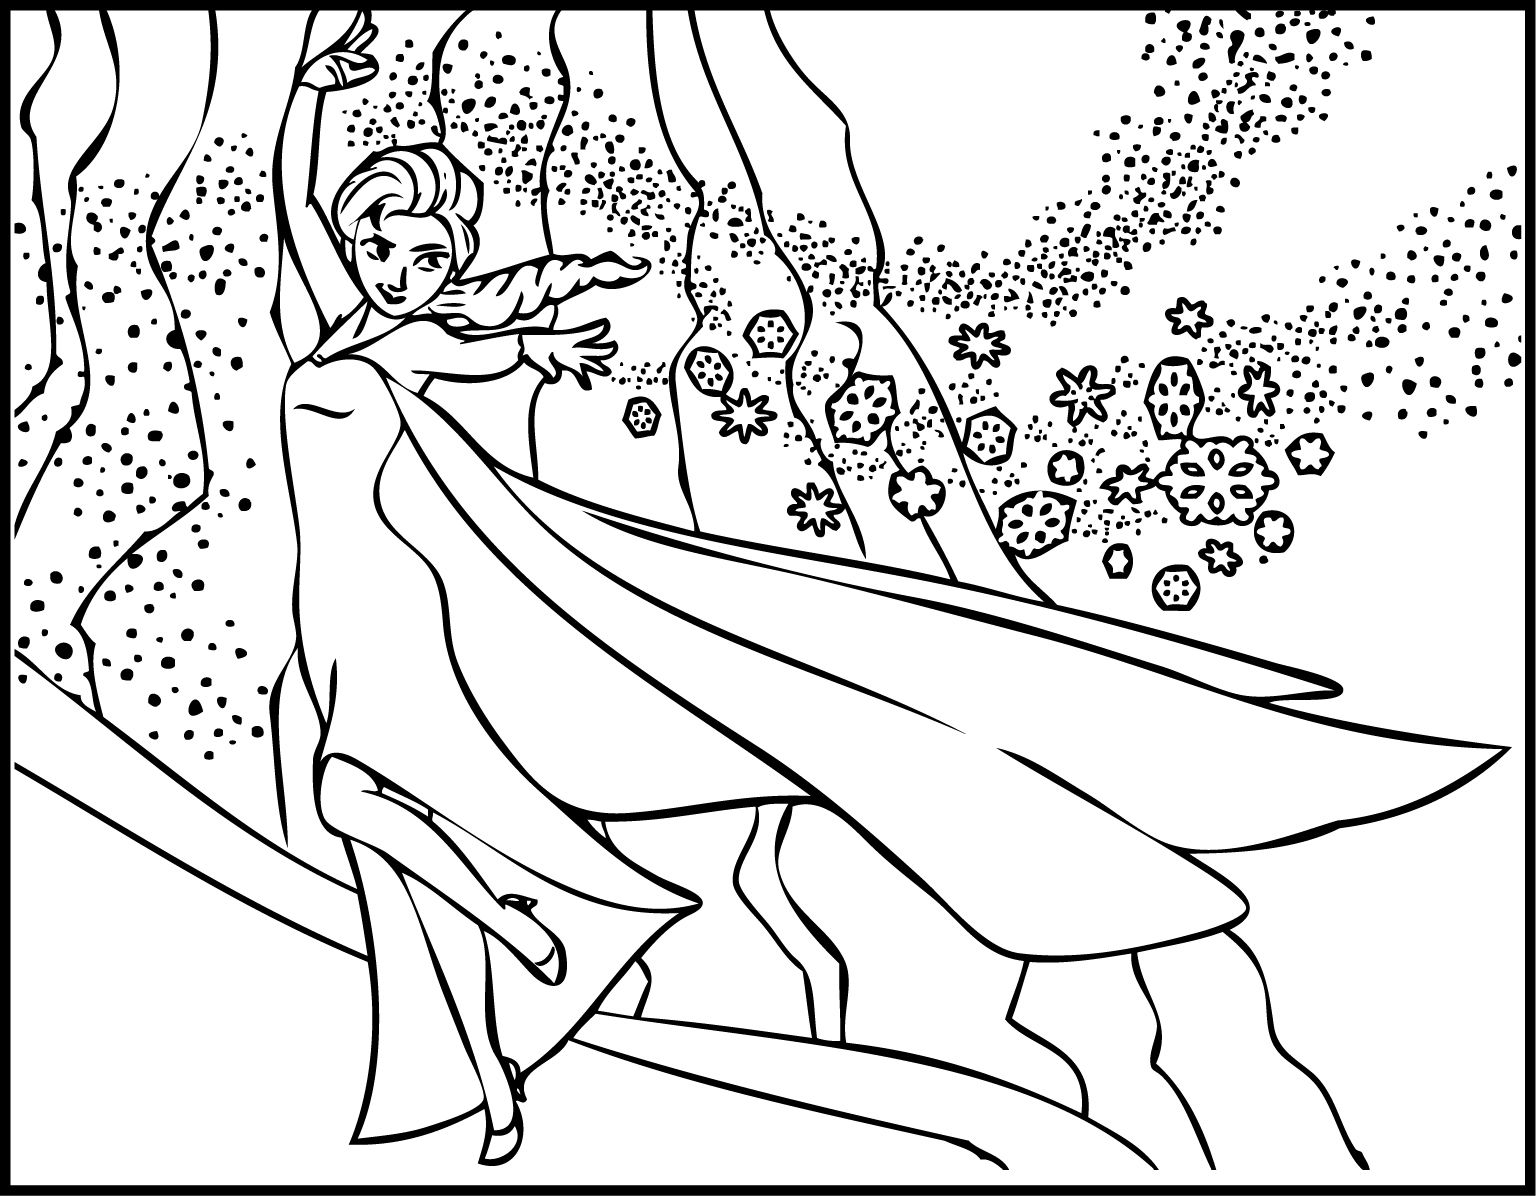 Elsa The Snow Showing Magic Coloring Page Wecoloringpage Elsa Coloring Pages Coloring Pages Castle Coloring Page